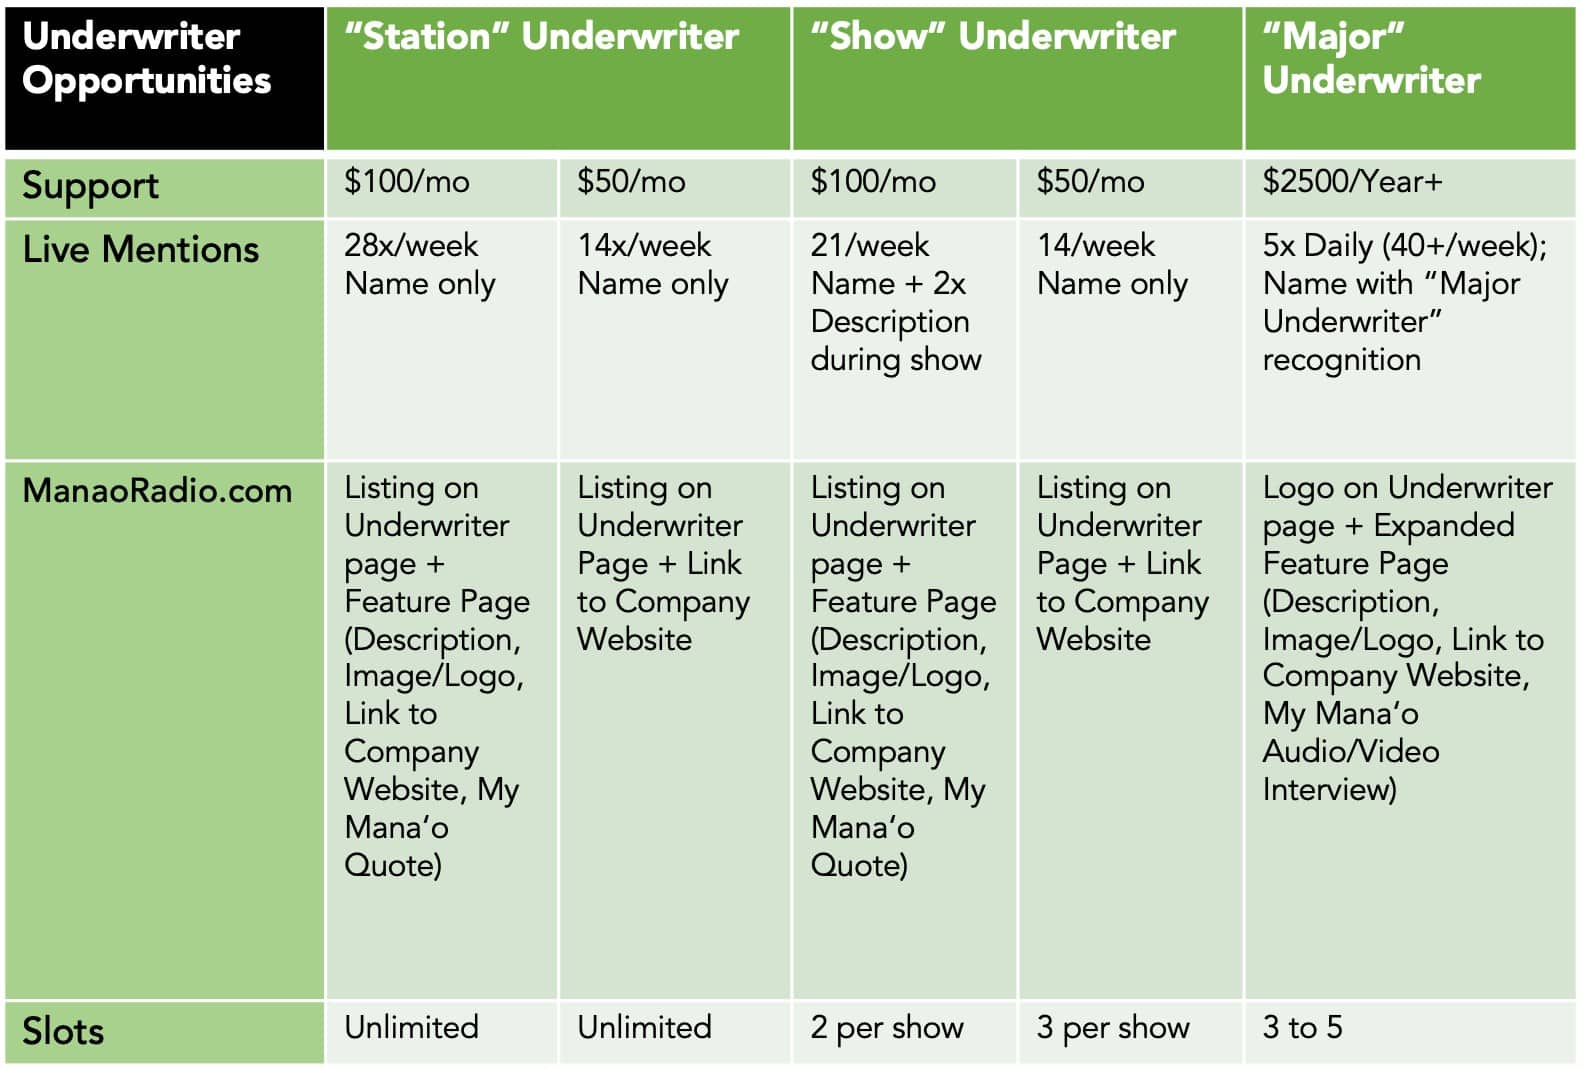 Underwriter Opportunities chart